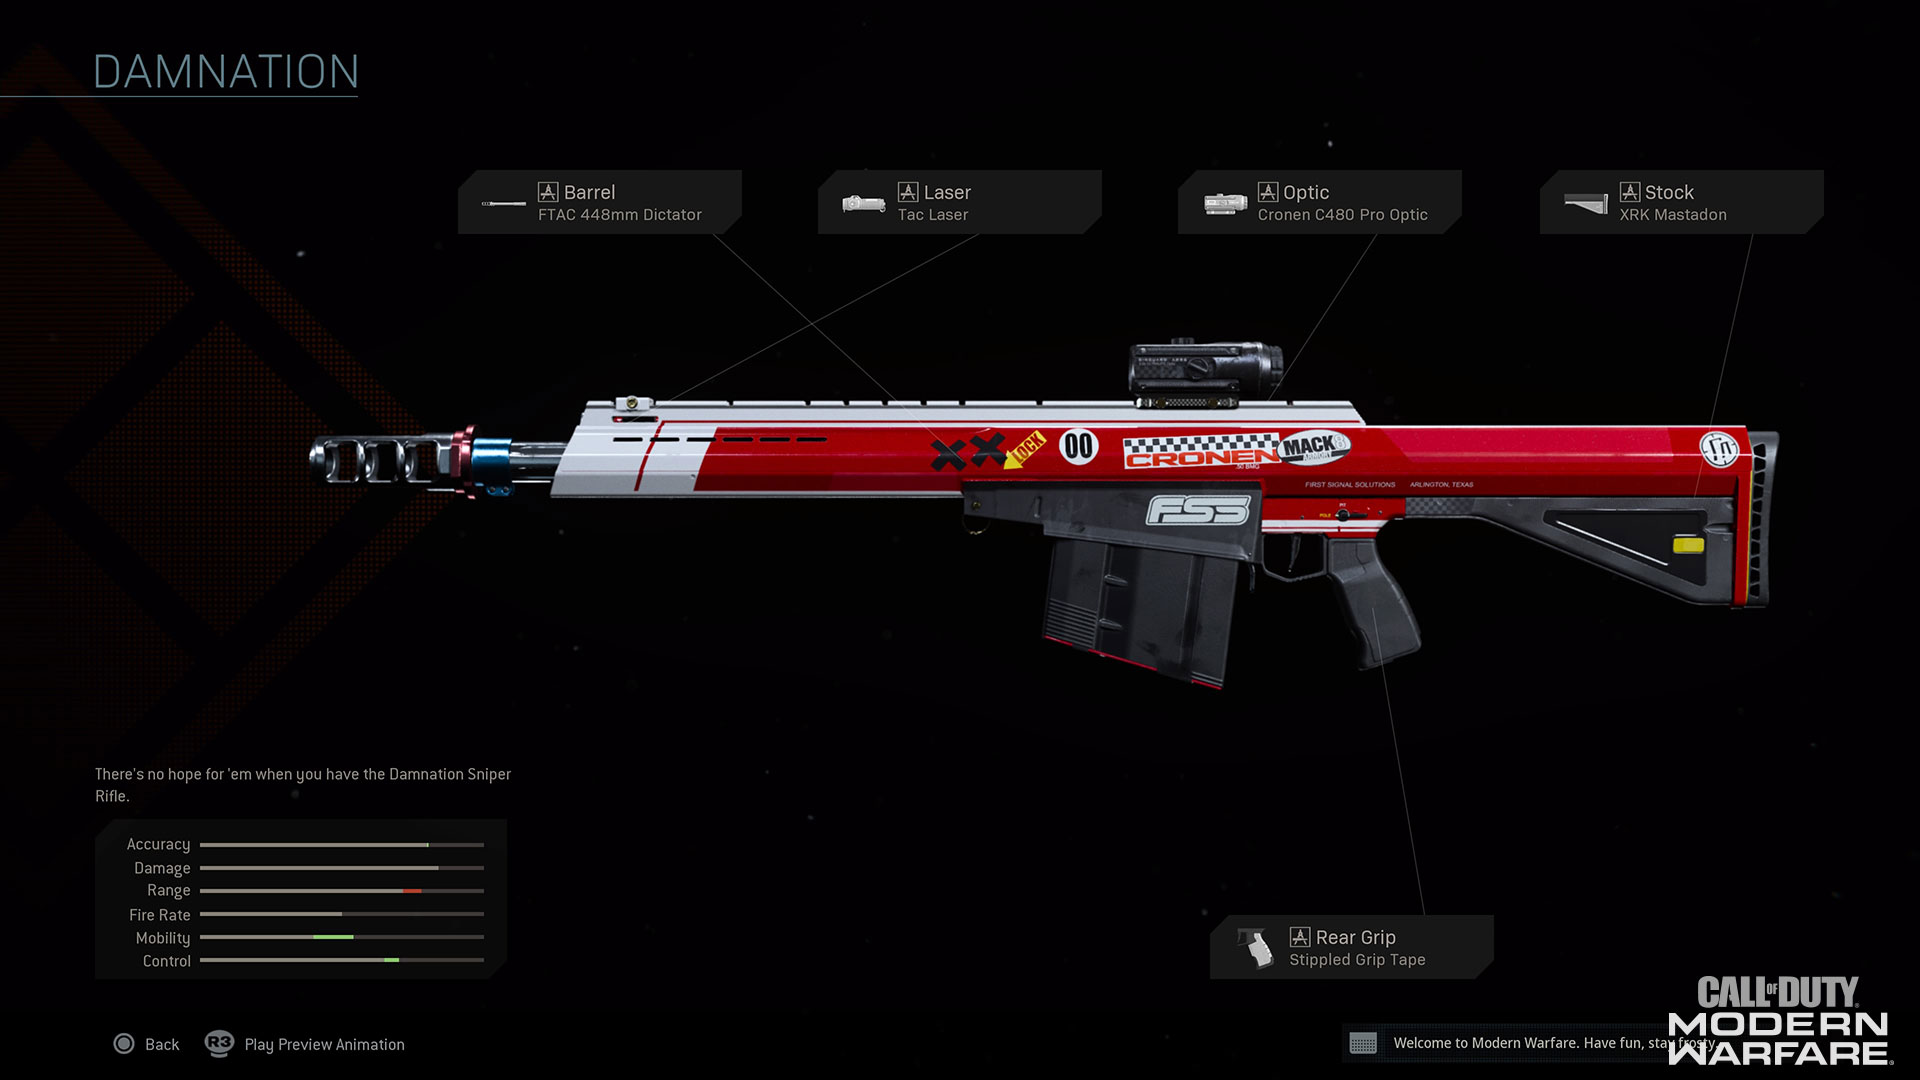 The Rytec AMR: How to Unlock the New Sniper Rifle in Call of Duty®: Modern Warfare® - Image 3